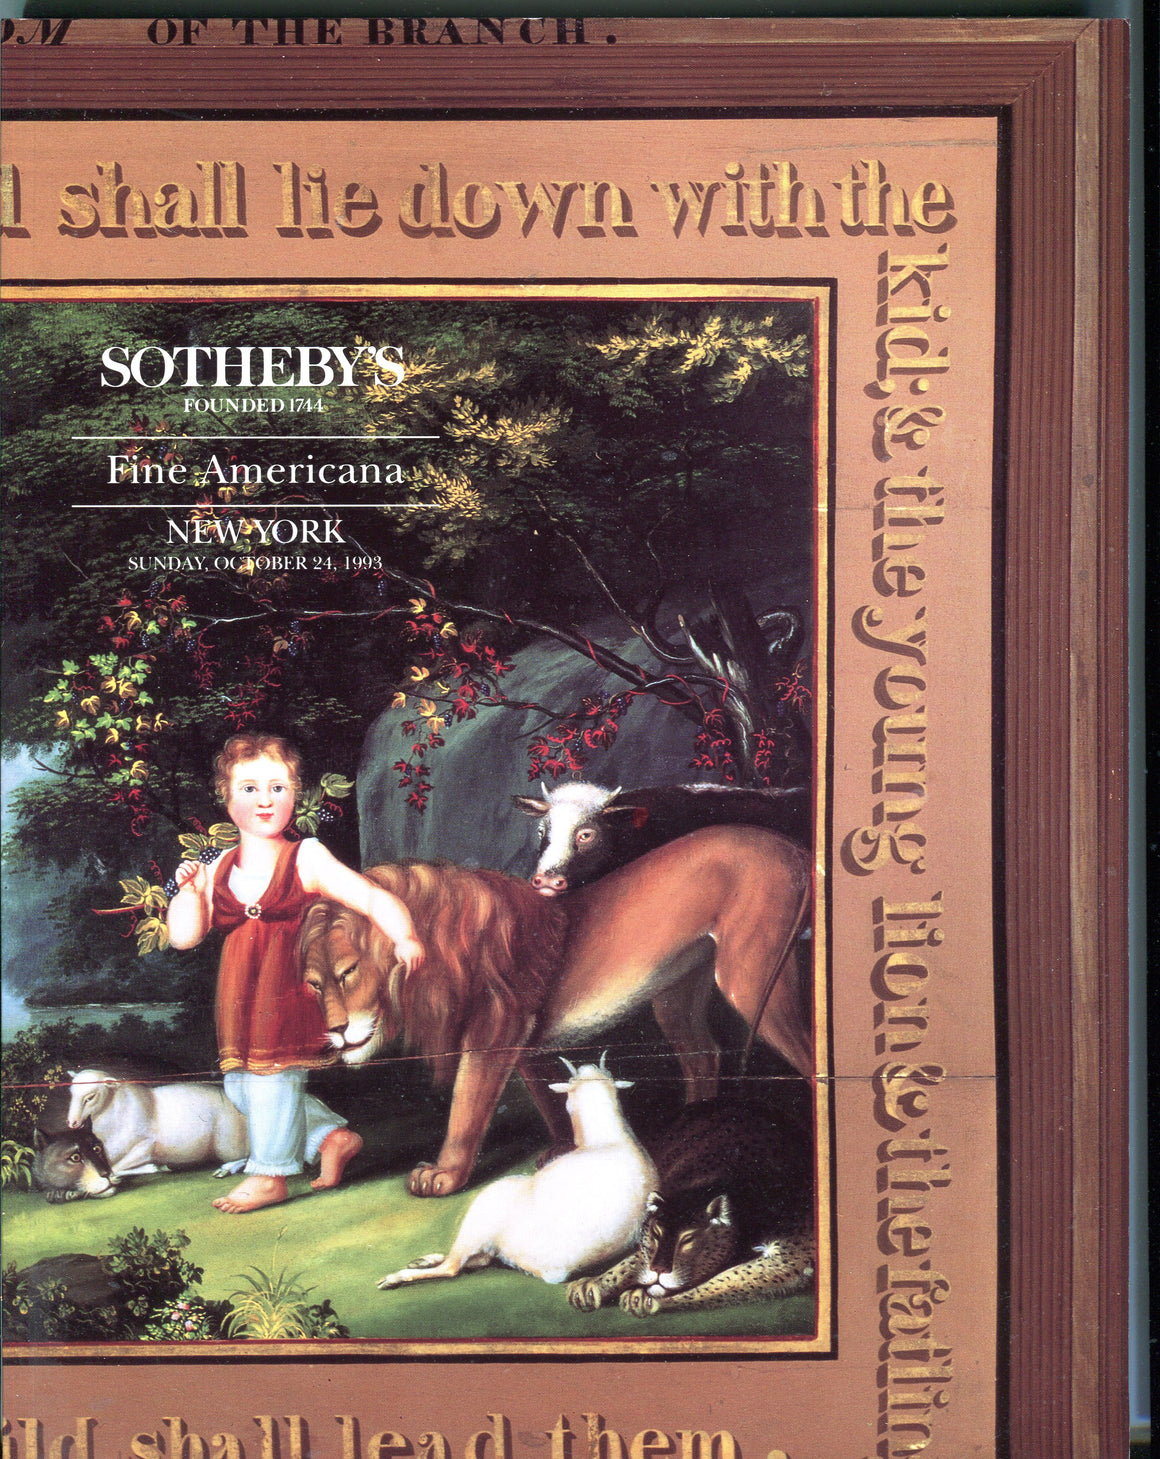 Sothebys Auction Catalog Oct 24 1993 Fine Americana